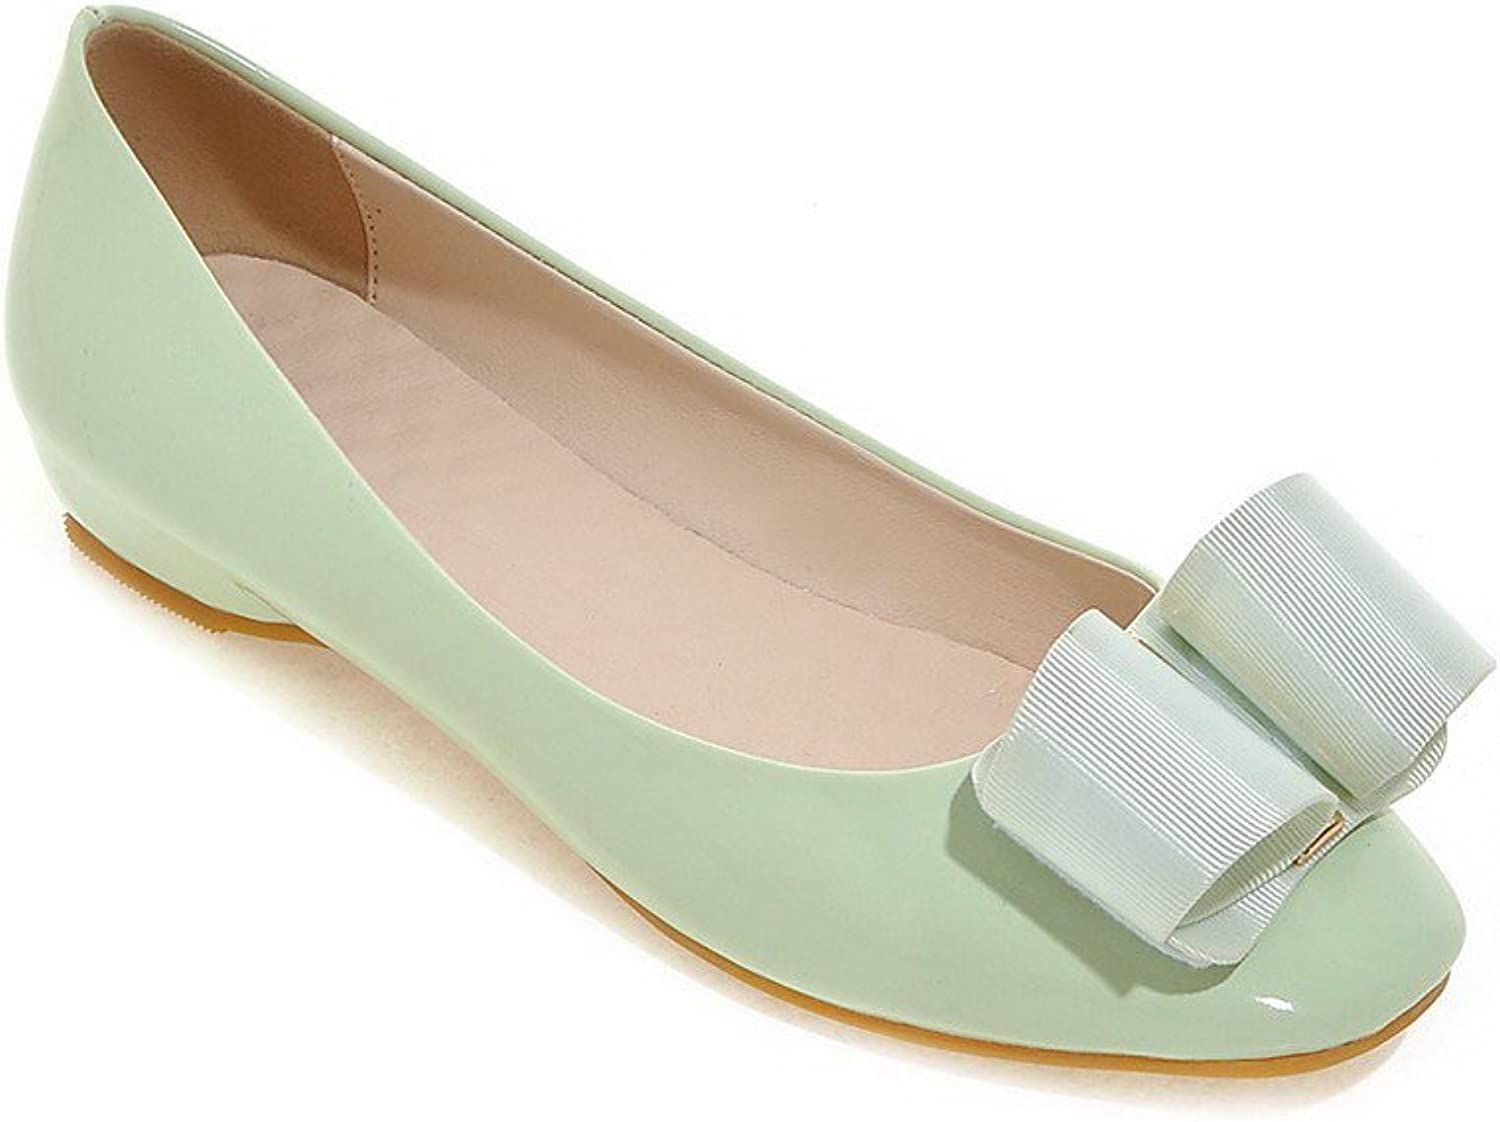 WeenFashion Women's Solid Patent Leather Low Heels Square Closed Toe Pull On Pumps-shoes